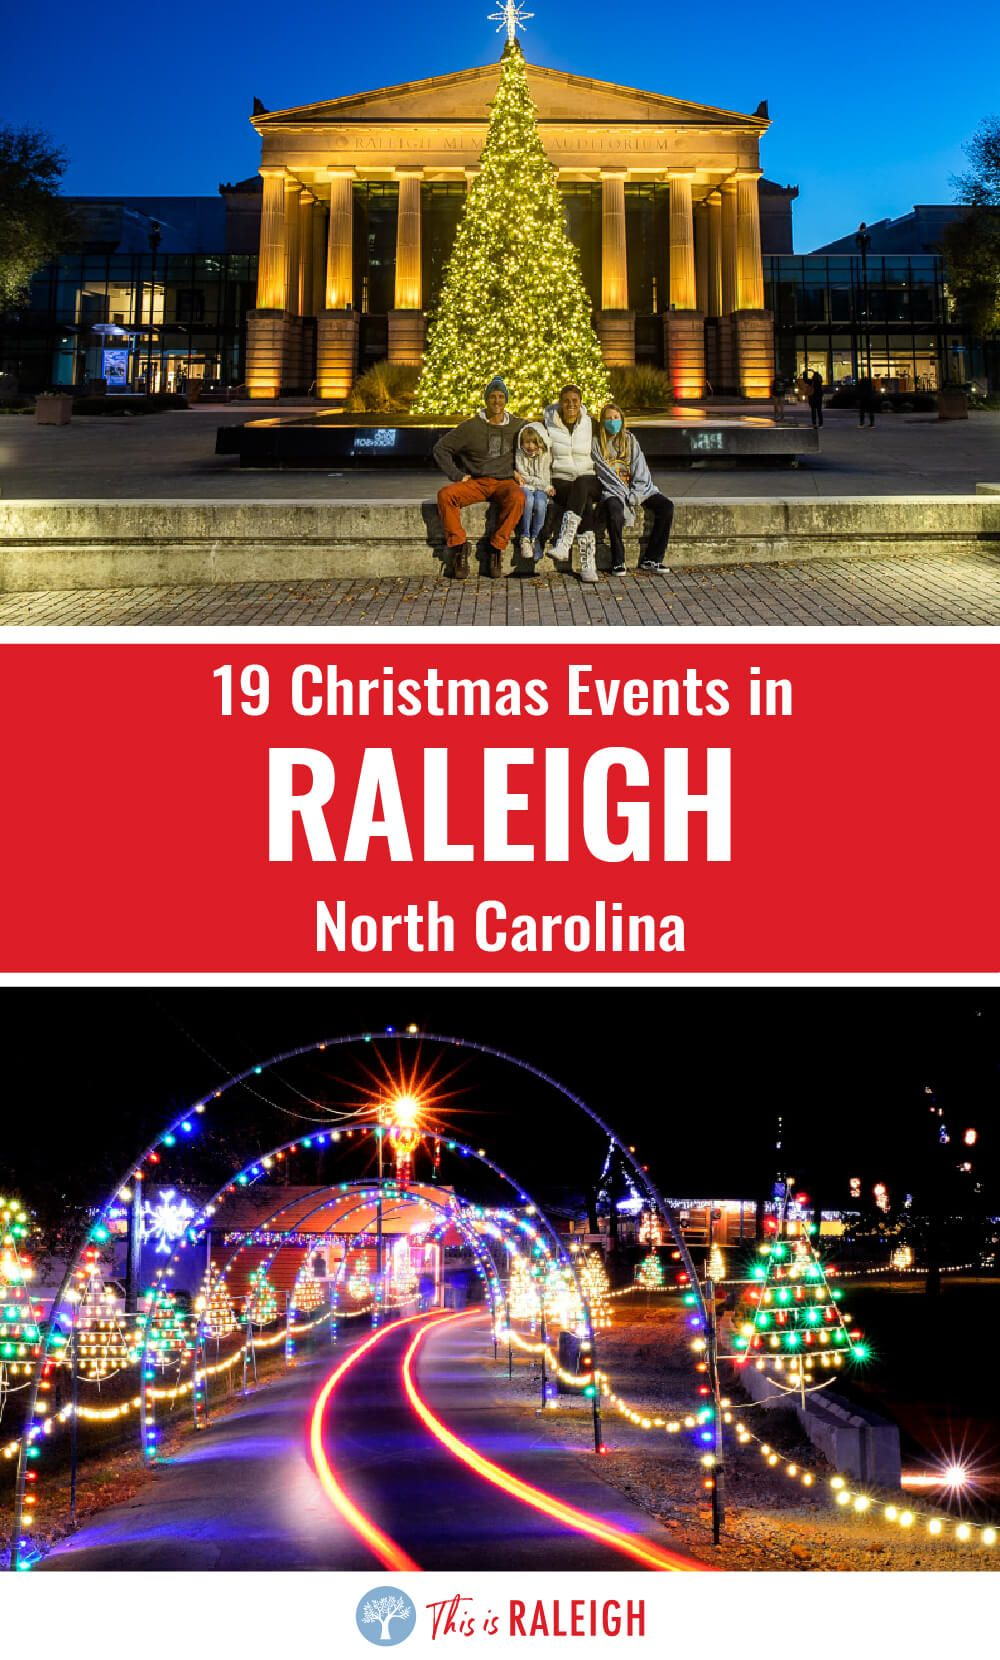 Christmas Events In Raleigh Nc 2021 19 Exciting Christmas Events In Raleigh Nc In 2021 Christmas Events North Carolina Travel Raleigh